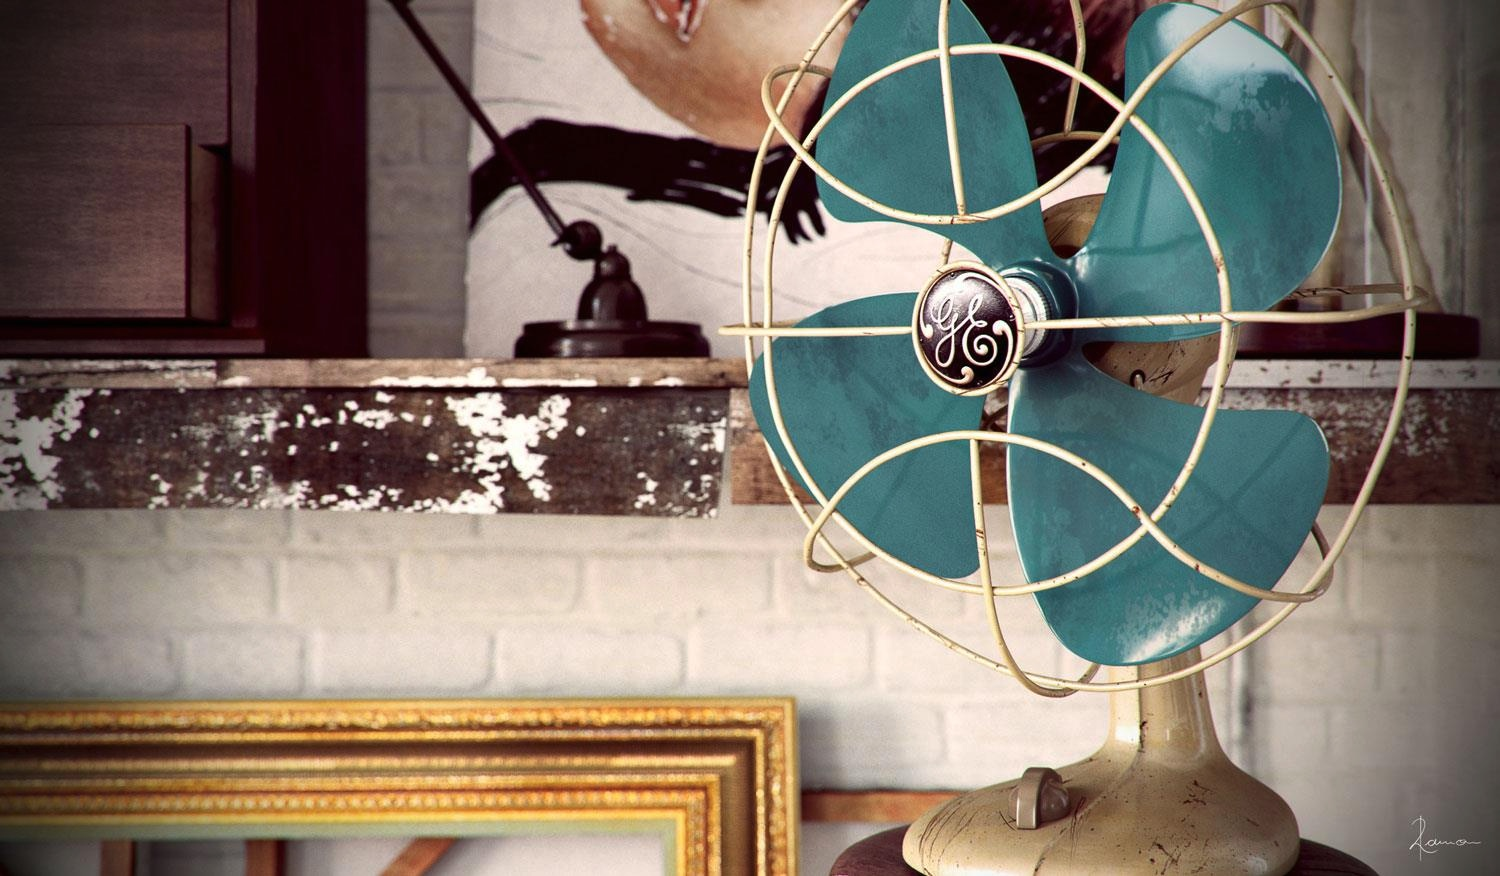 Industrial Bedroom Give You Artistic Feeling: Turquiose Fan